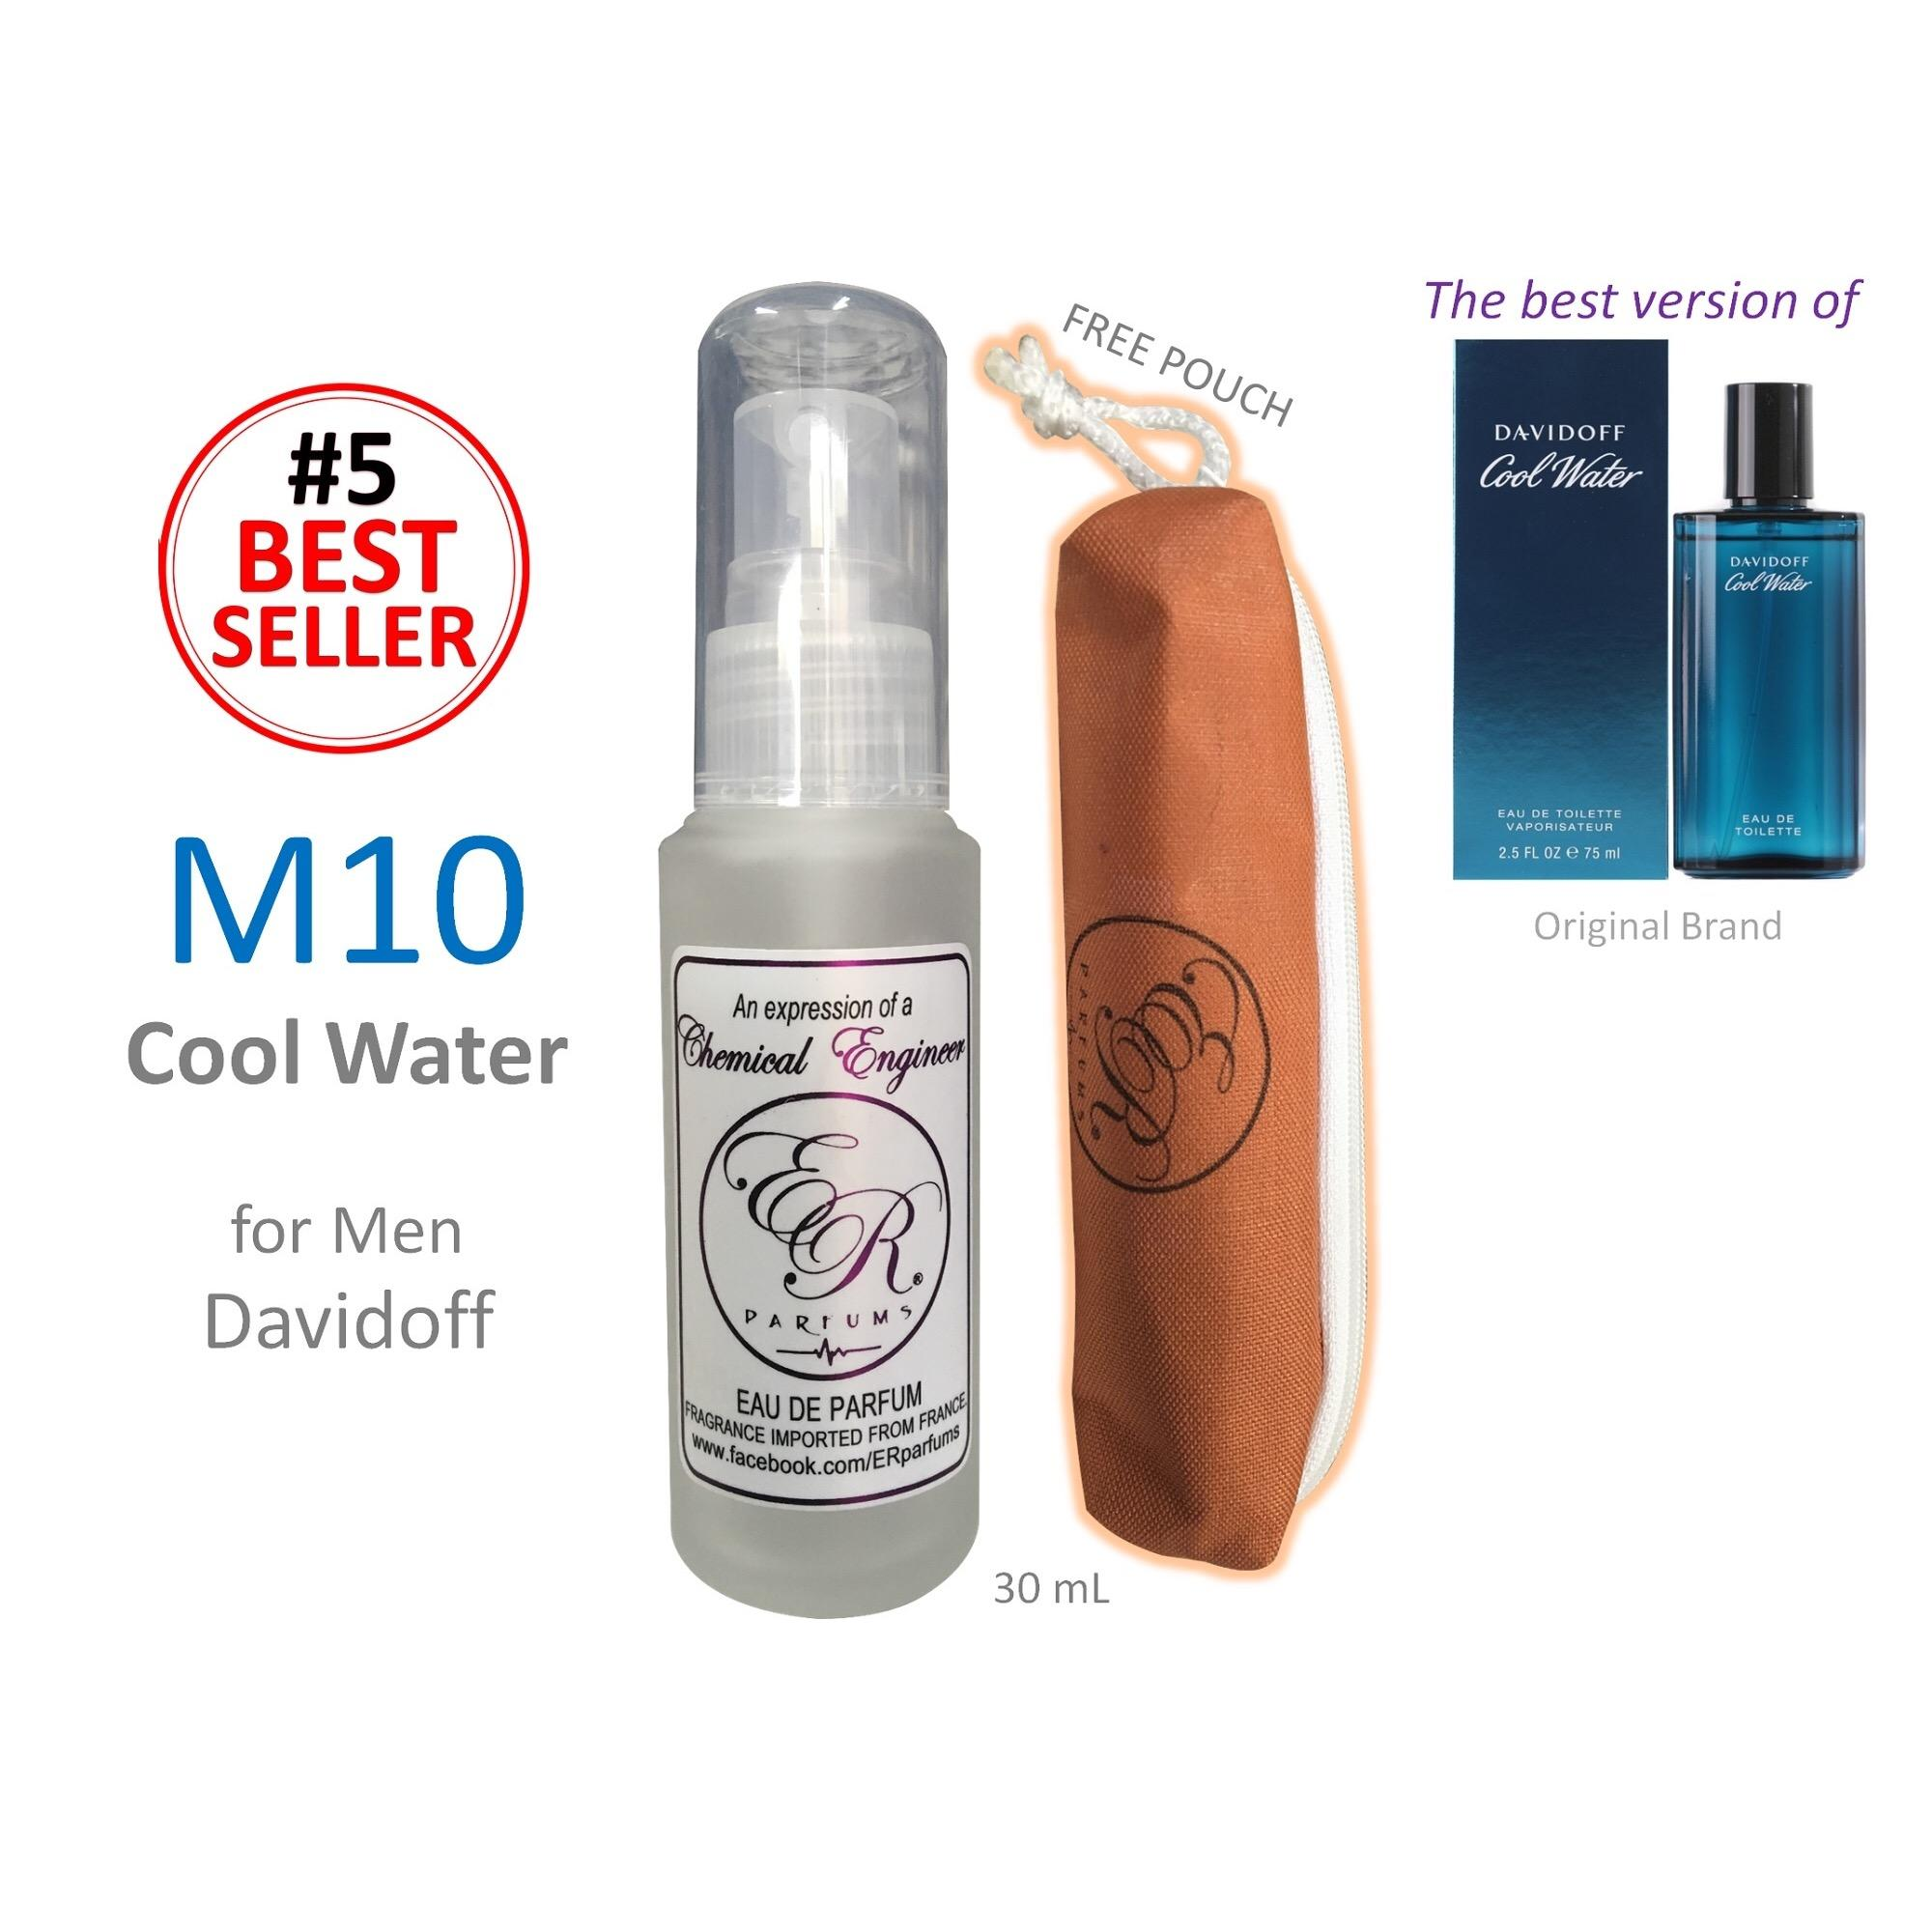 ER PARFUMS M10 Cool Water for Men by Davidoff 1 piece 30 ml perfume with free pouch (Best Seller) product preview, discount at cheapest price